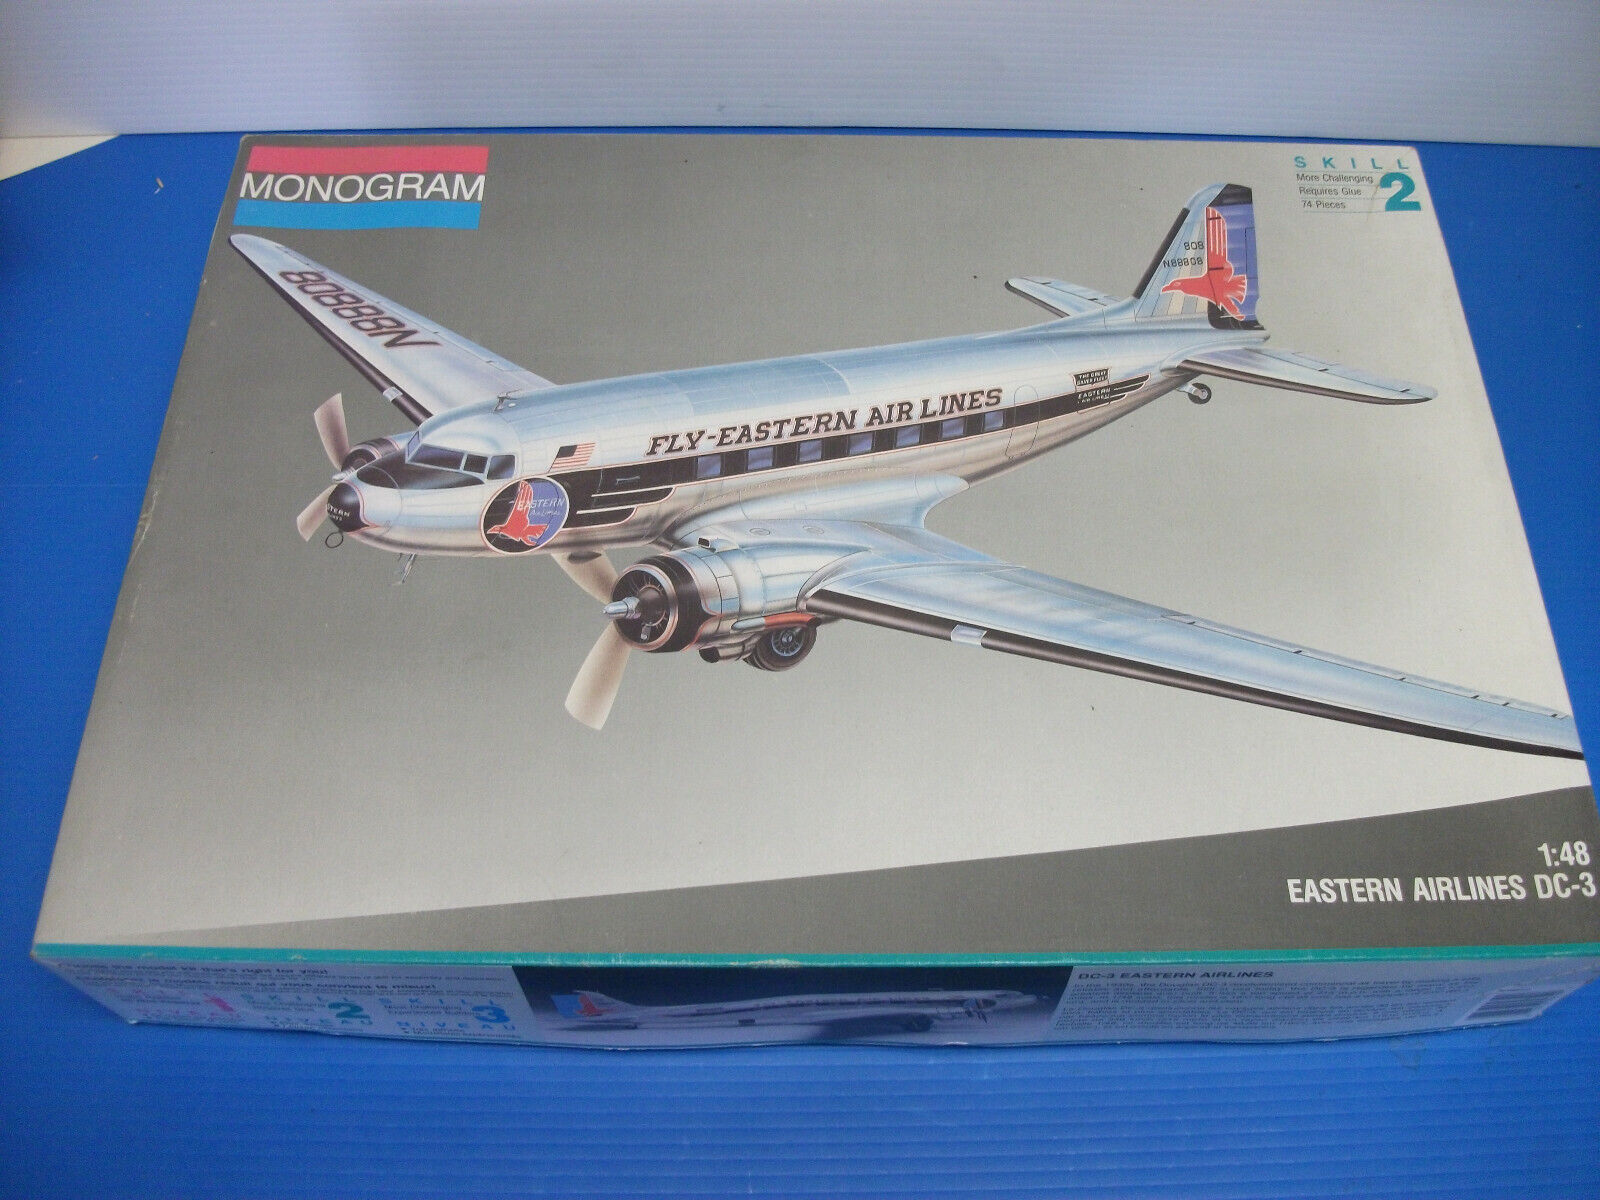 MONOGRAM EASTERN AIRLINES DC-3 1 48